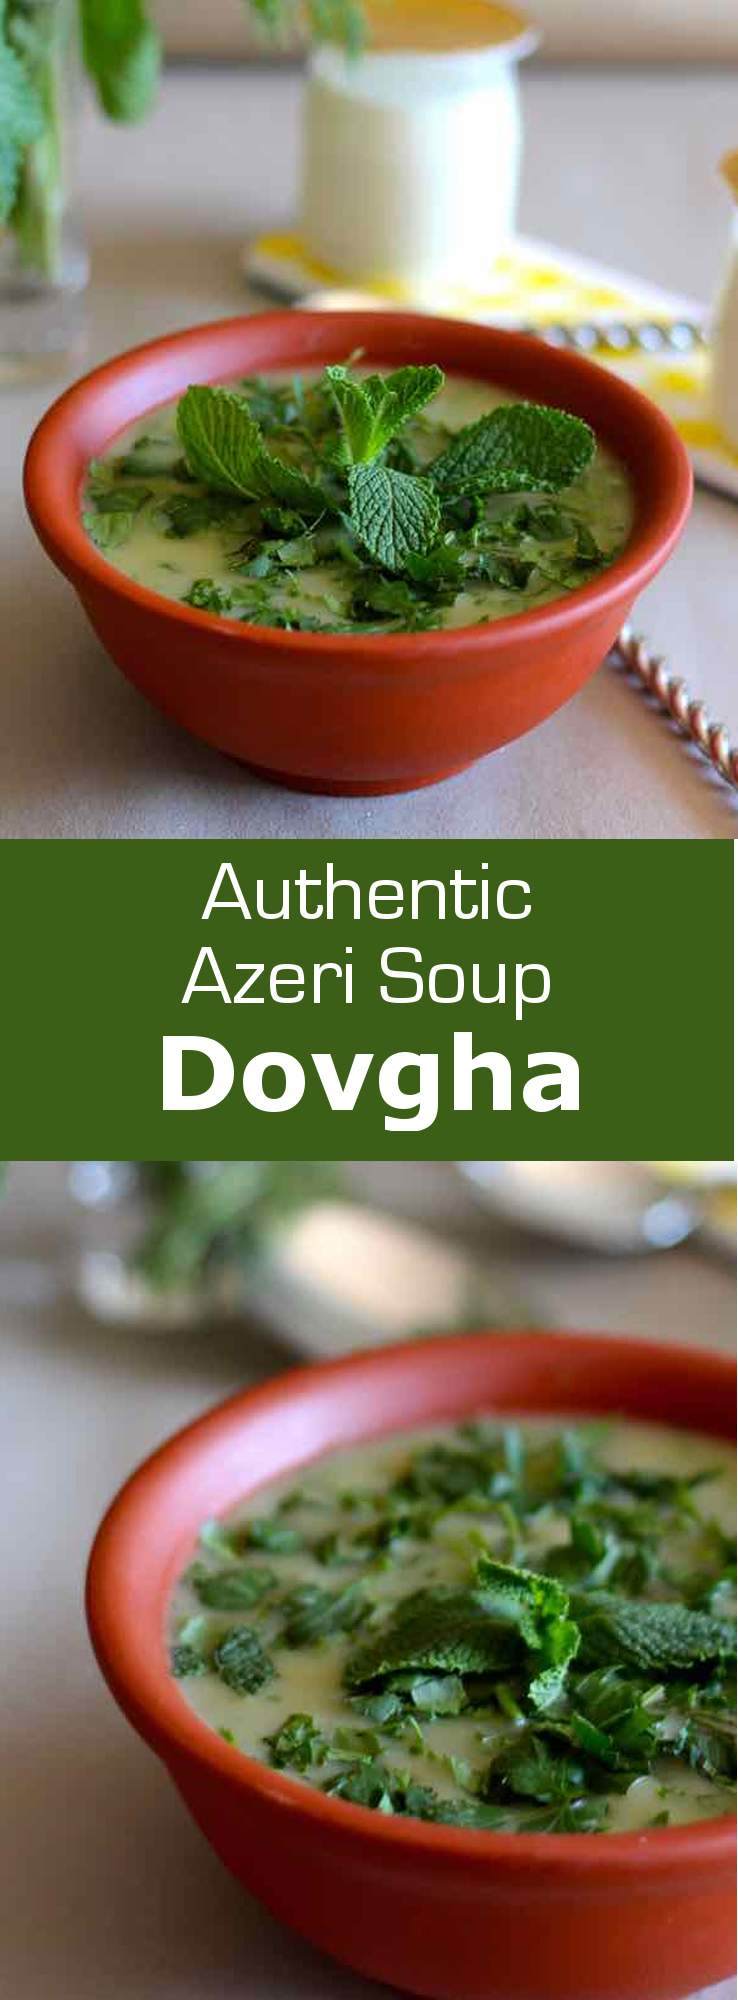 Dovga is a yogurt soup with herbs from Azerbaijan. It can be consumed hot or cold depending on the season. #Azerbaijan #Soup #WorldCuisine #196flavors